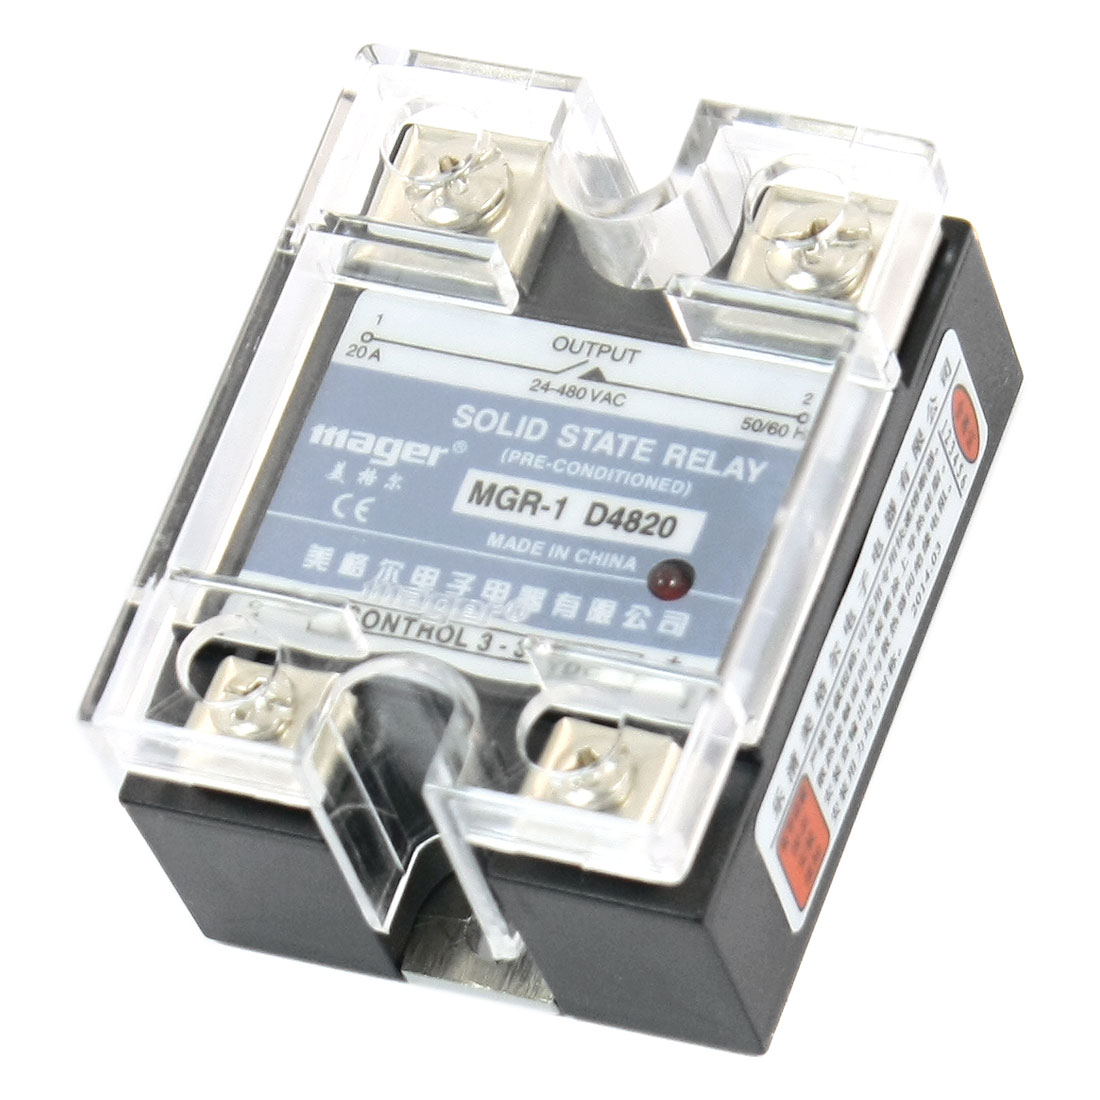 DC 3-32V AC 24-480V 20A Normal Open 4 Screw Terminal Single Phase Rectangle SSR Solid State Relay w Clear Cover